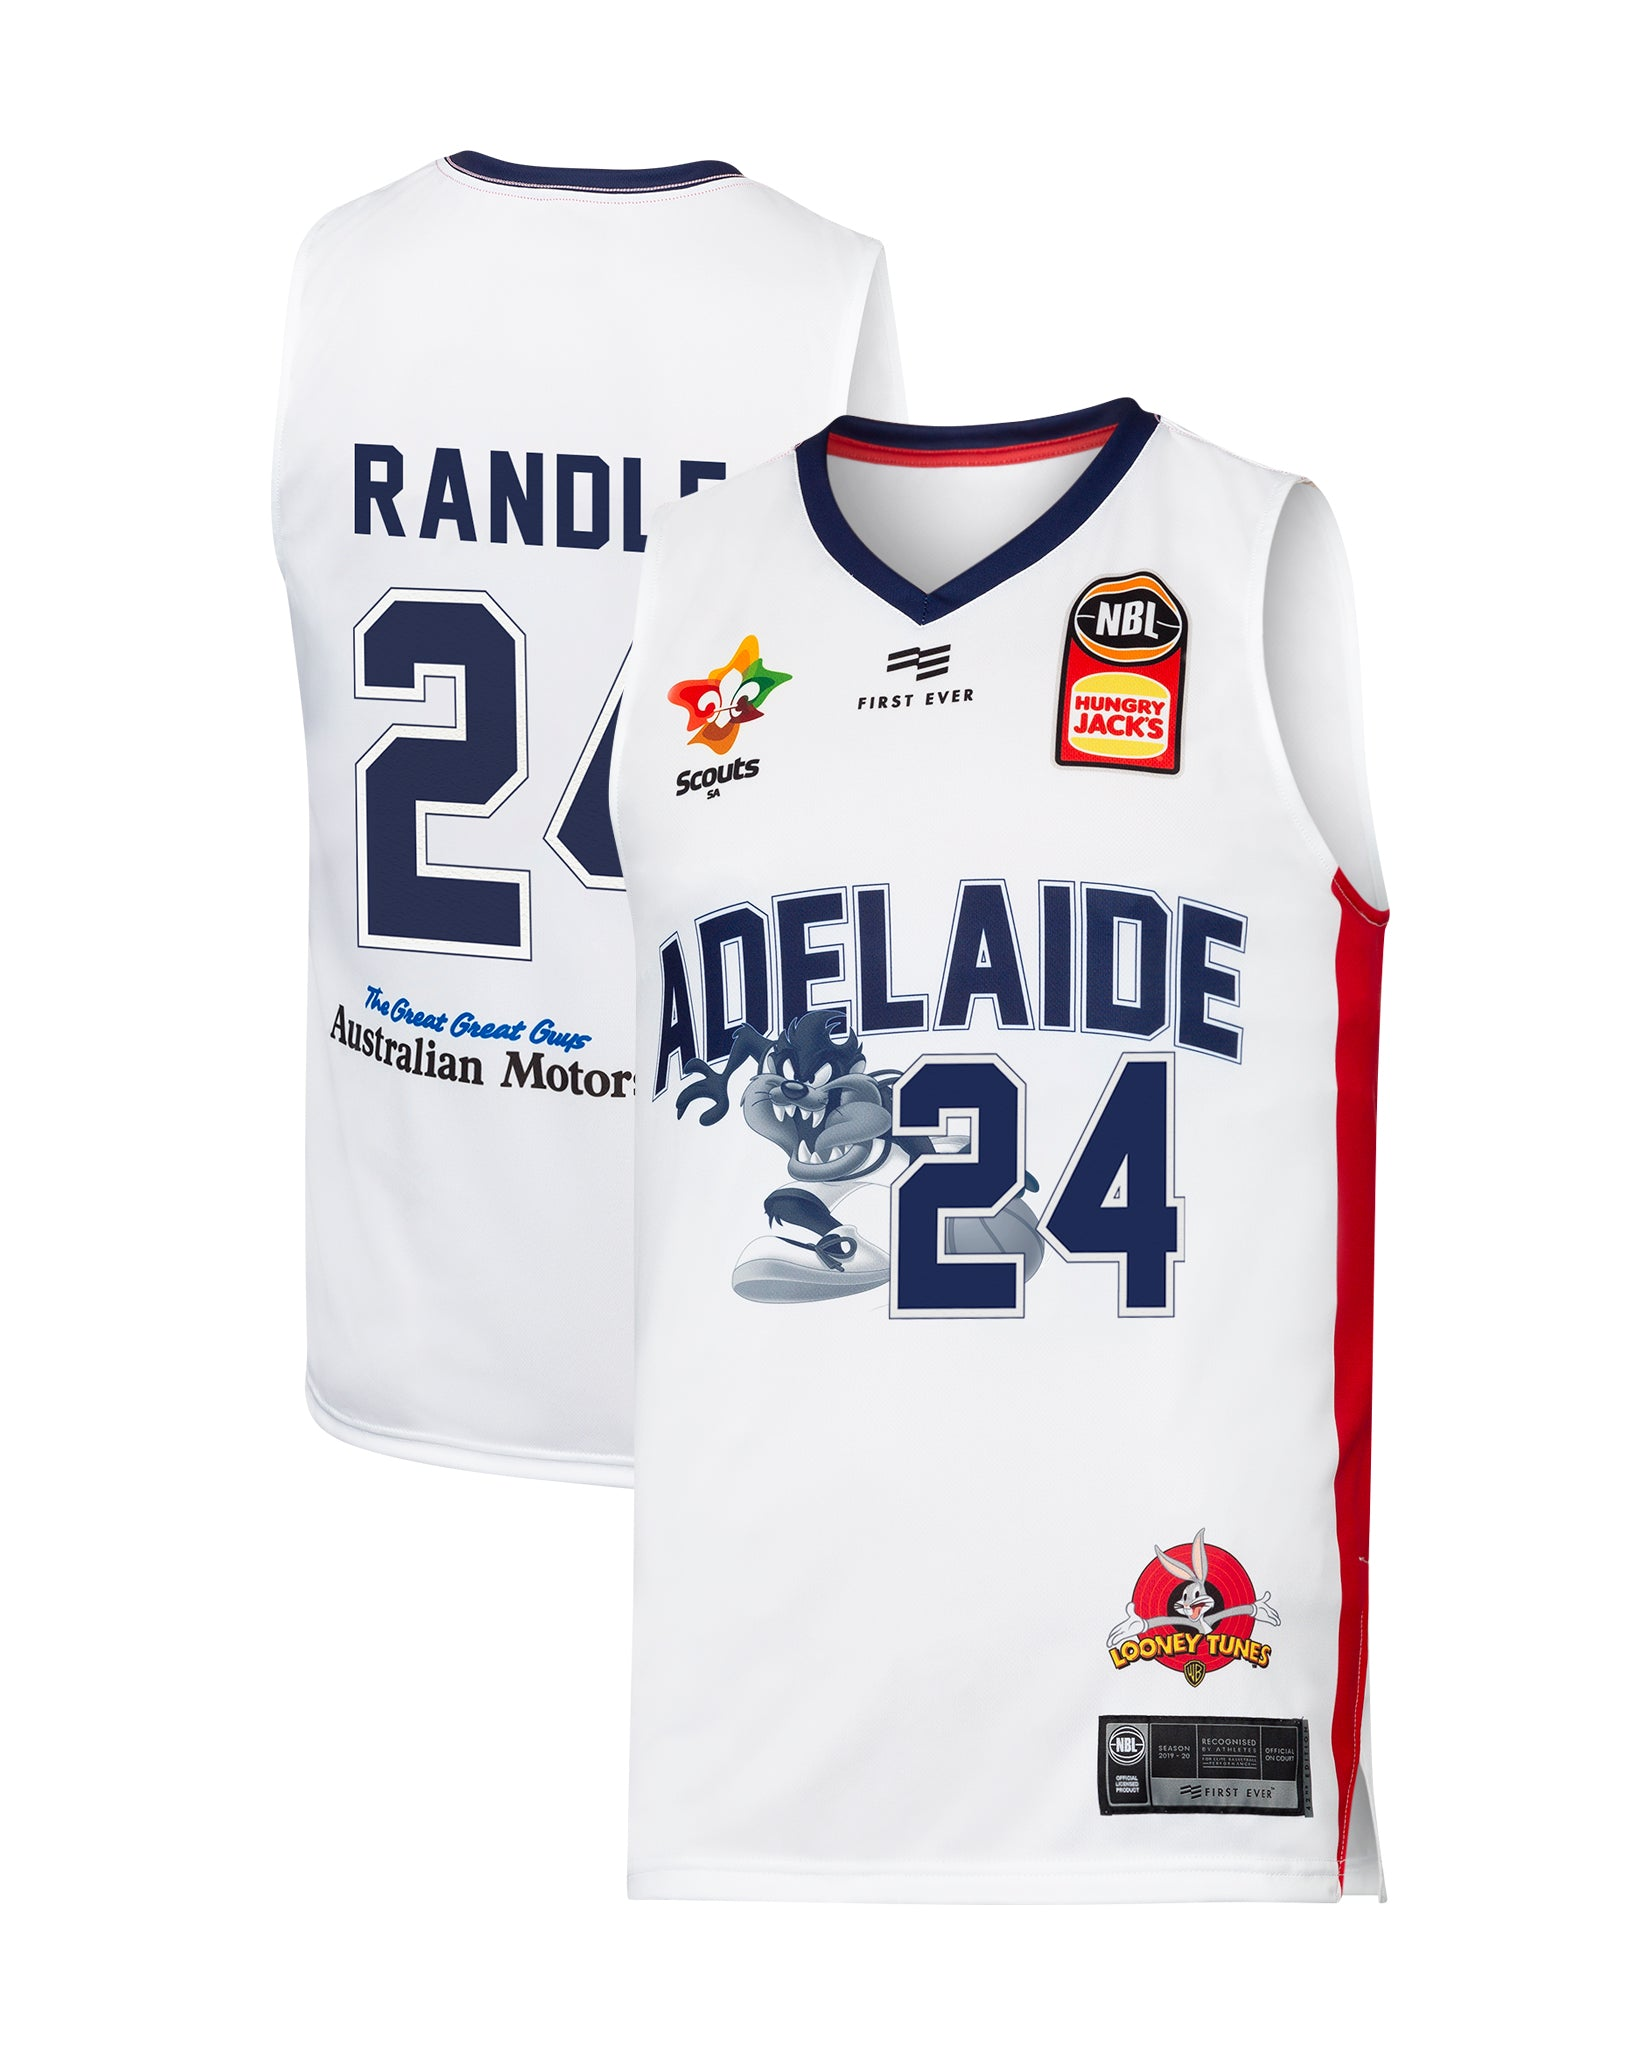 Adelaide 36ers 19/20 Looney Tunes Jersey - Jerome Randle